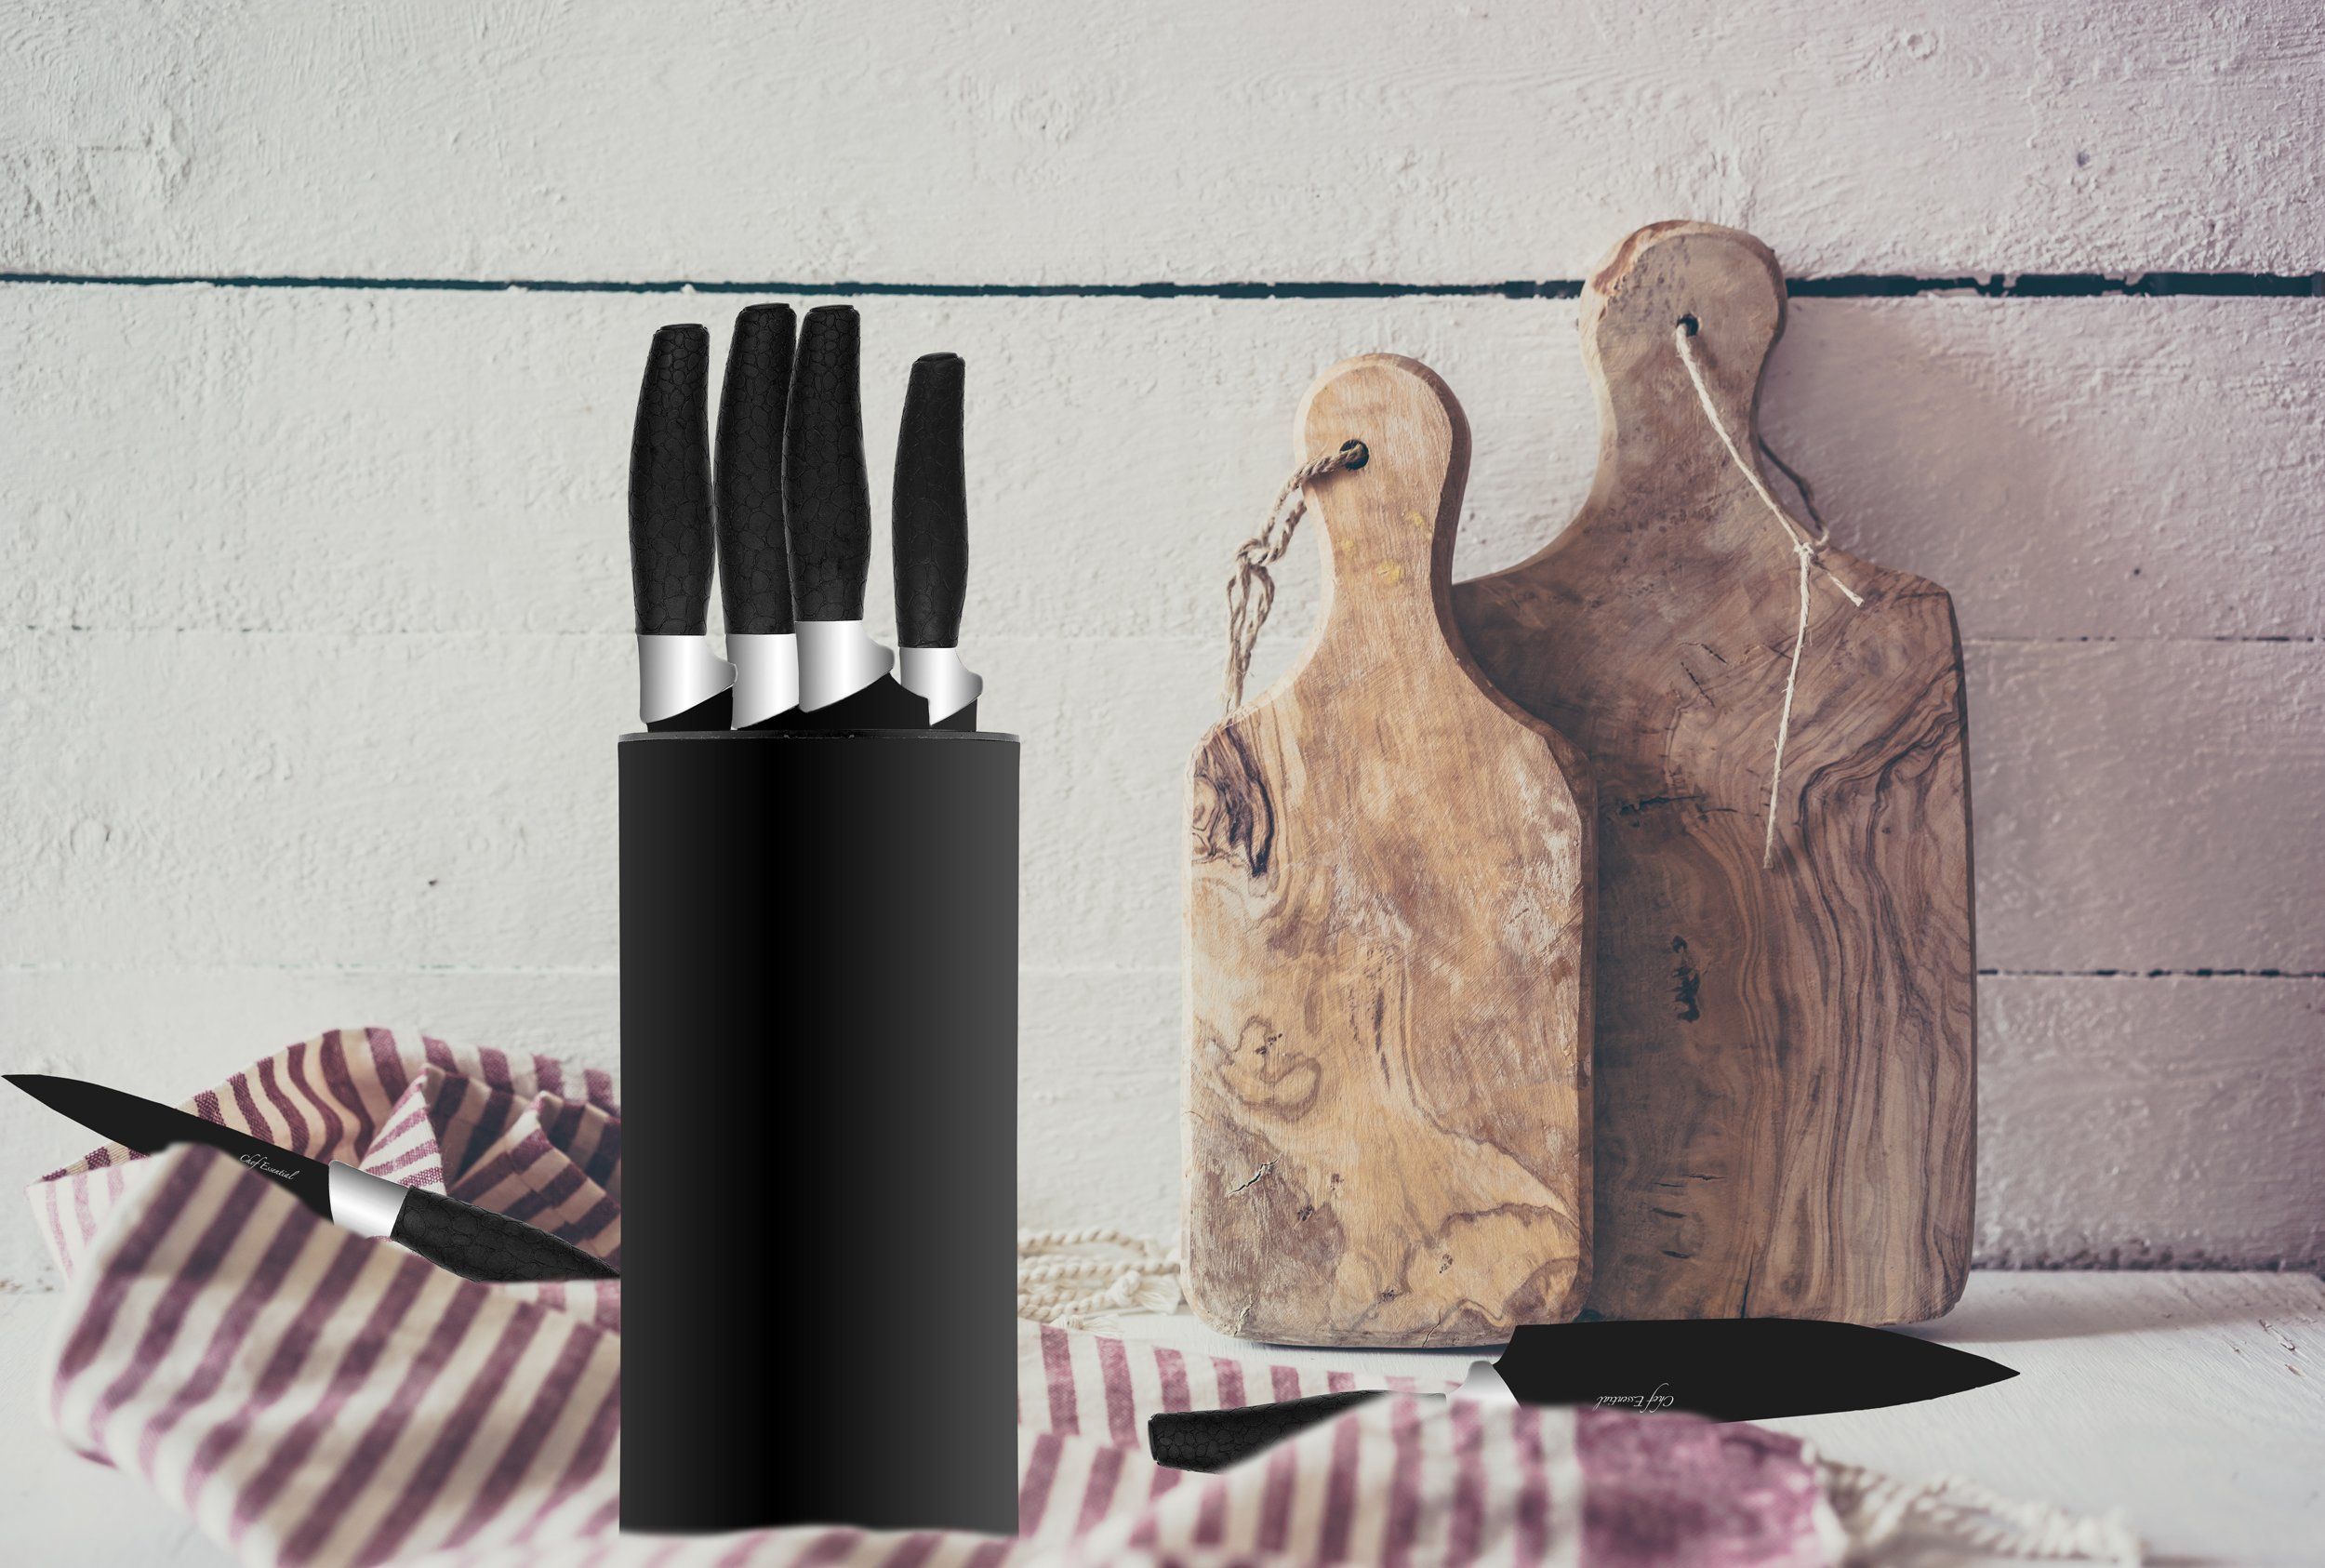 Chef Essential 7 Piece Knife Block Set, NEC Series, Black by Chef Essential (Image #6)